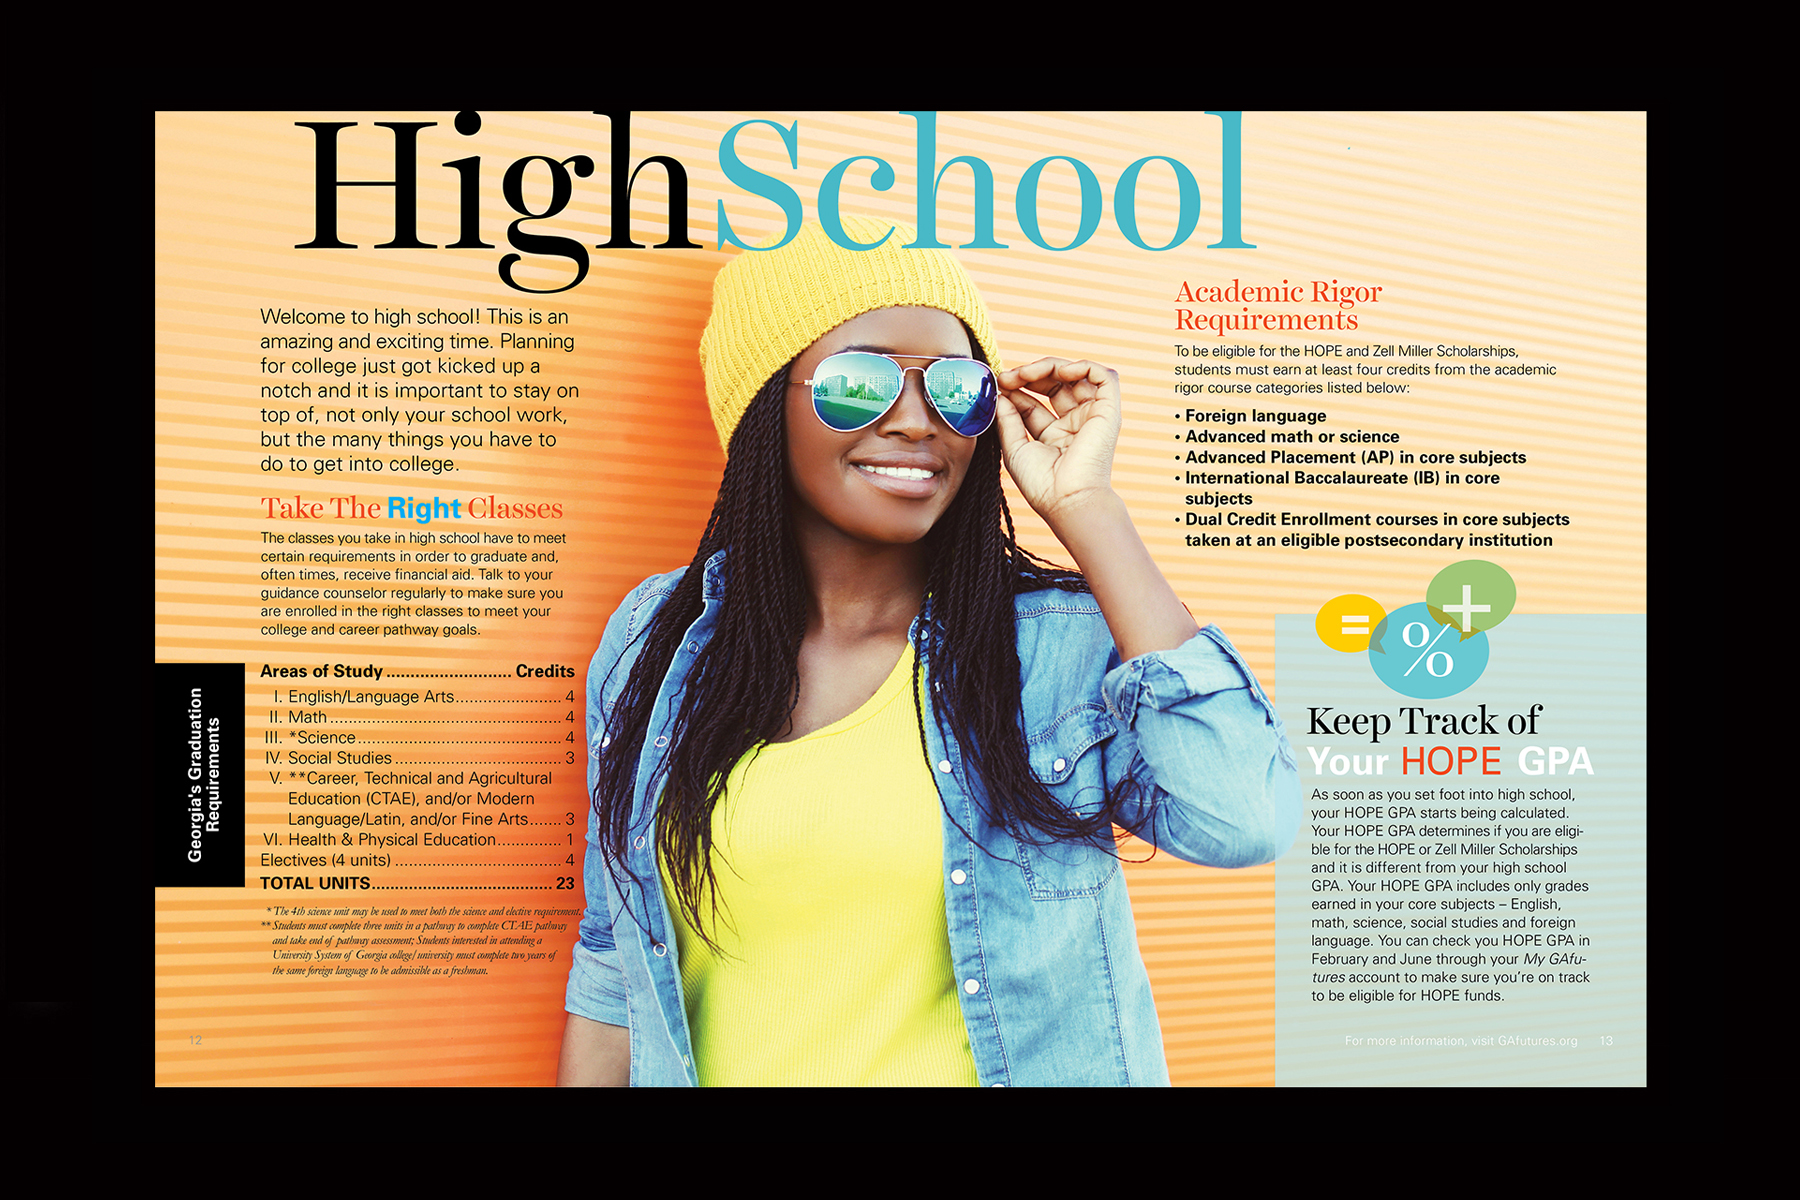 Student College Prep Publication